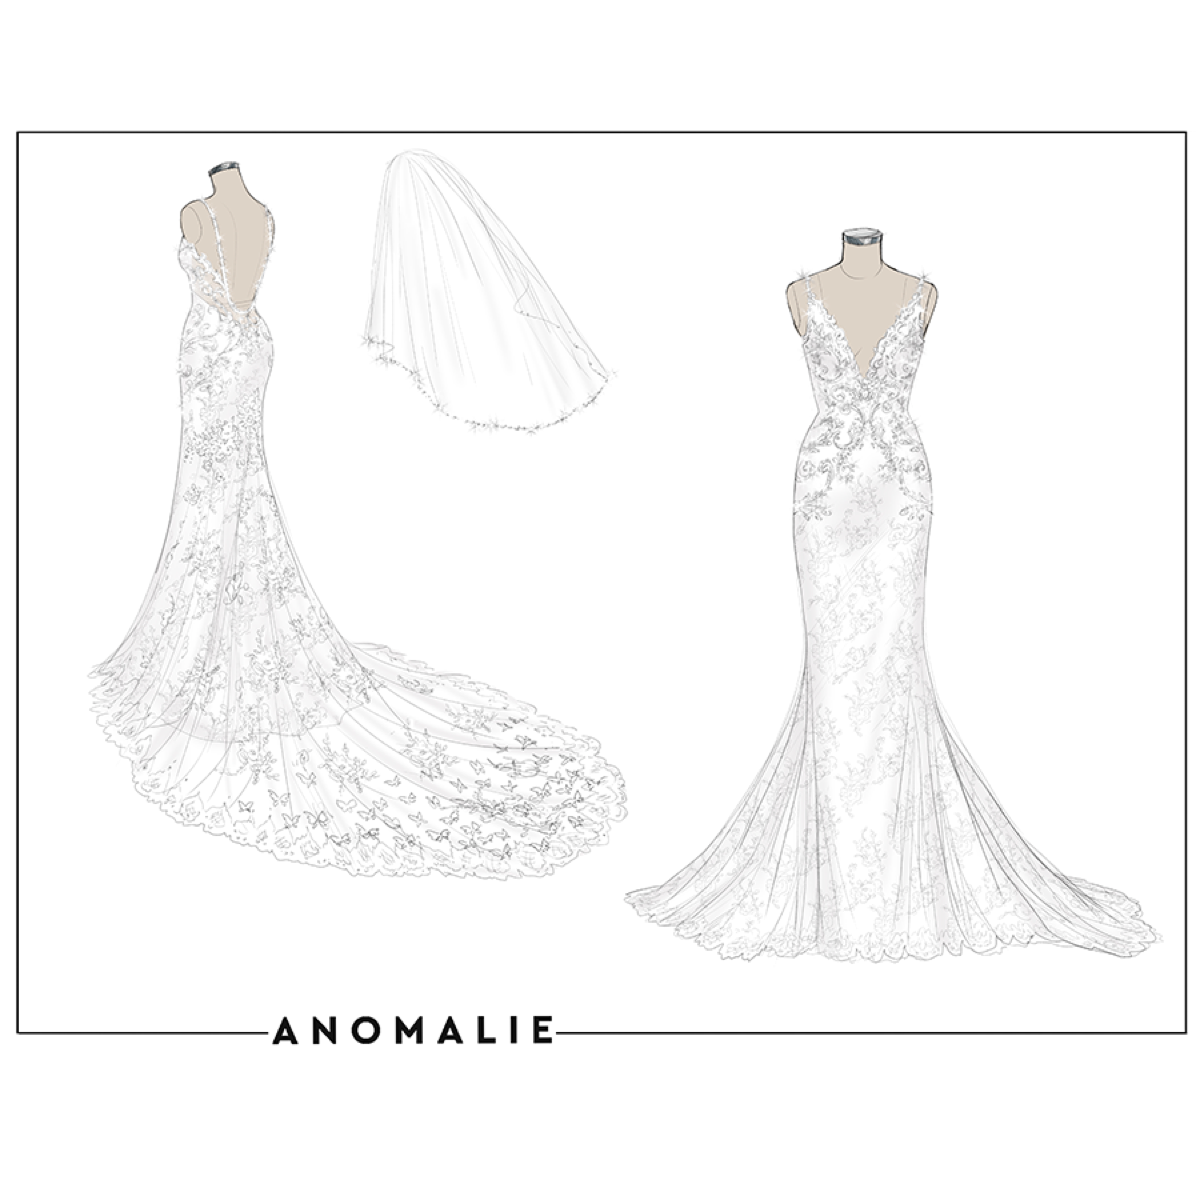 Anomalie custom design wedding dress fit and flare lace, custom beading, unlined train